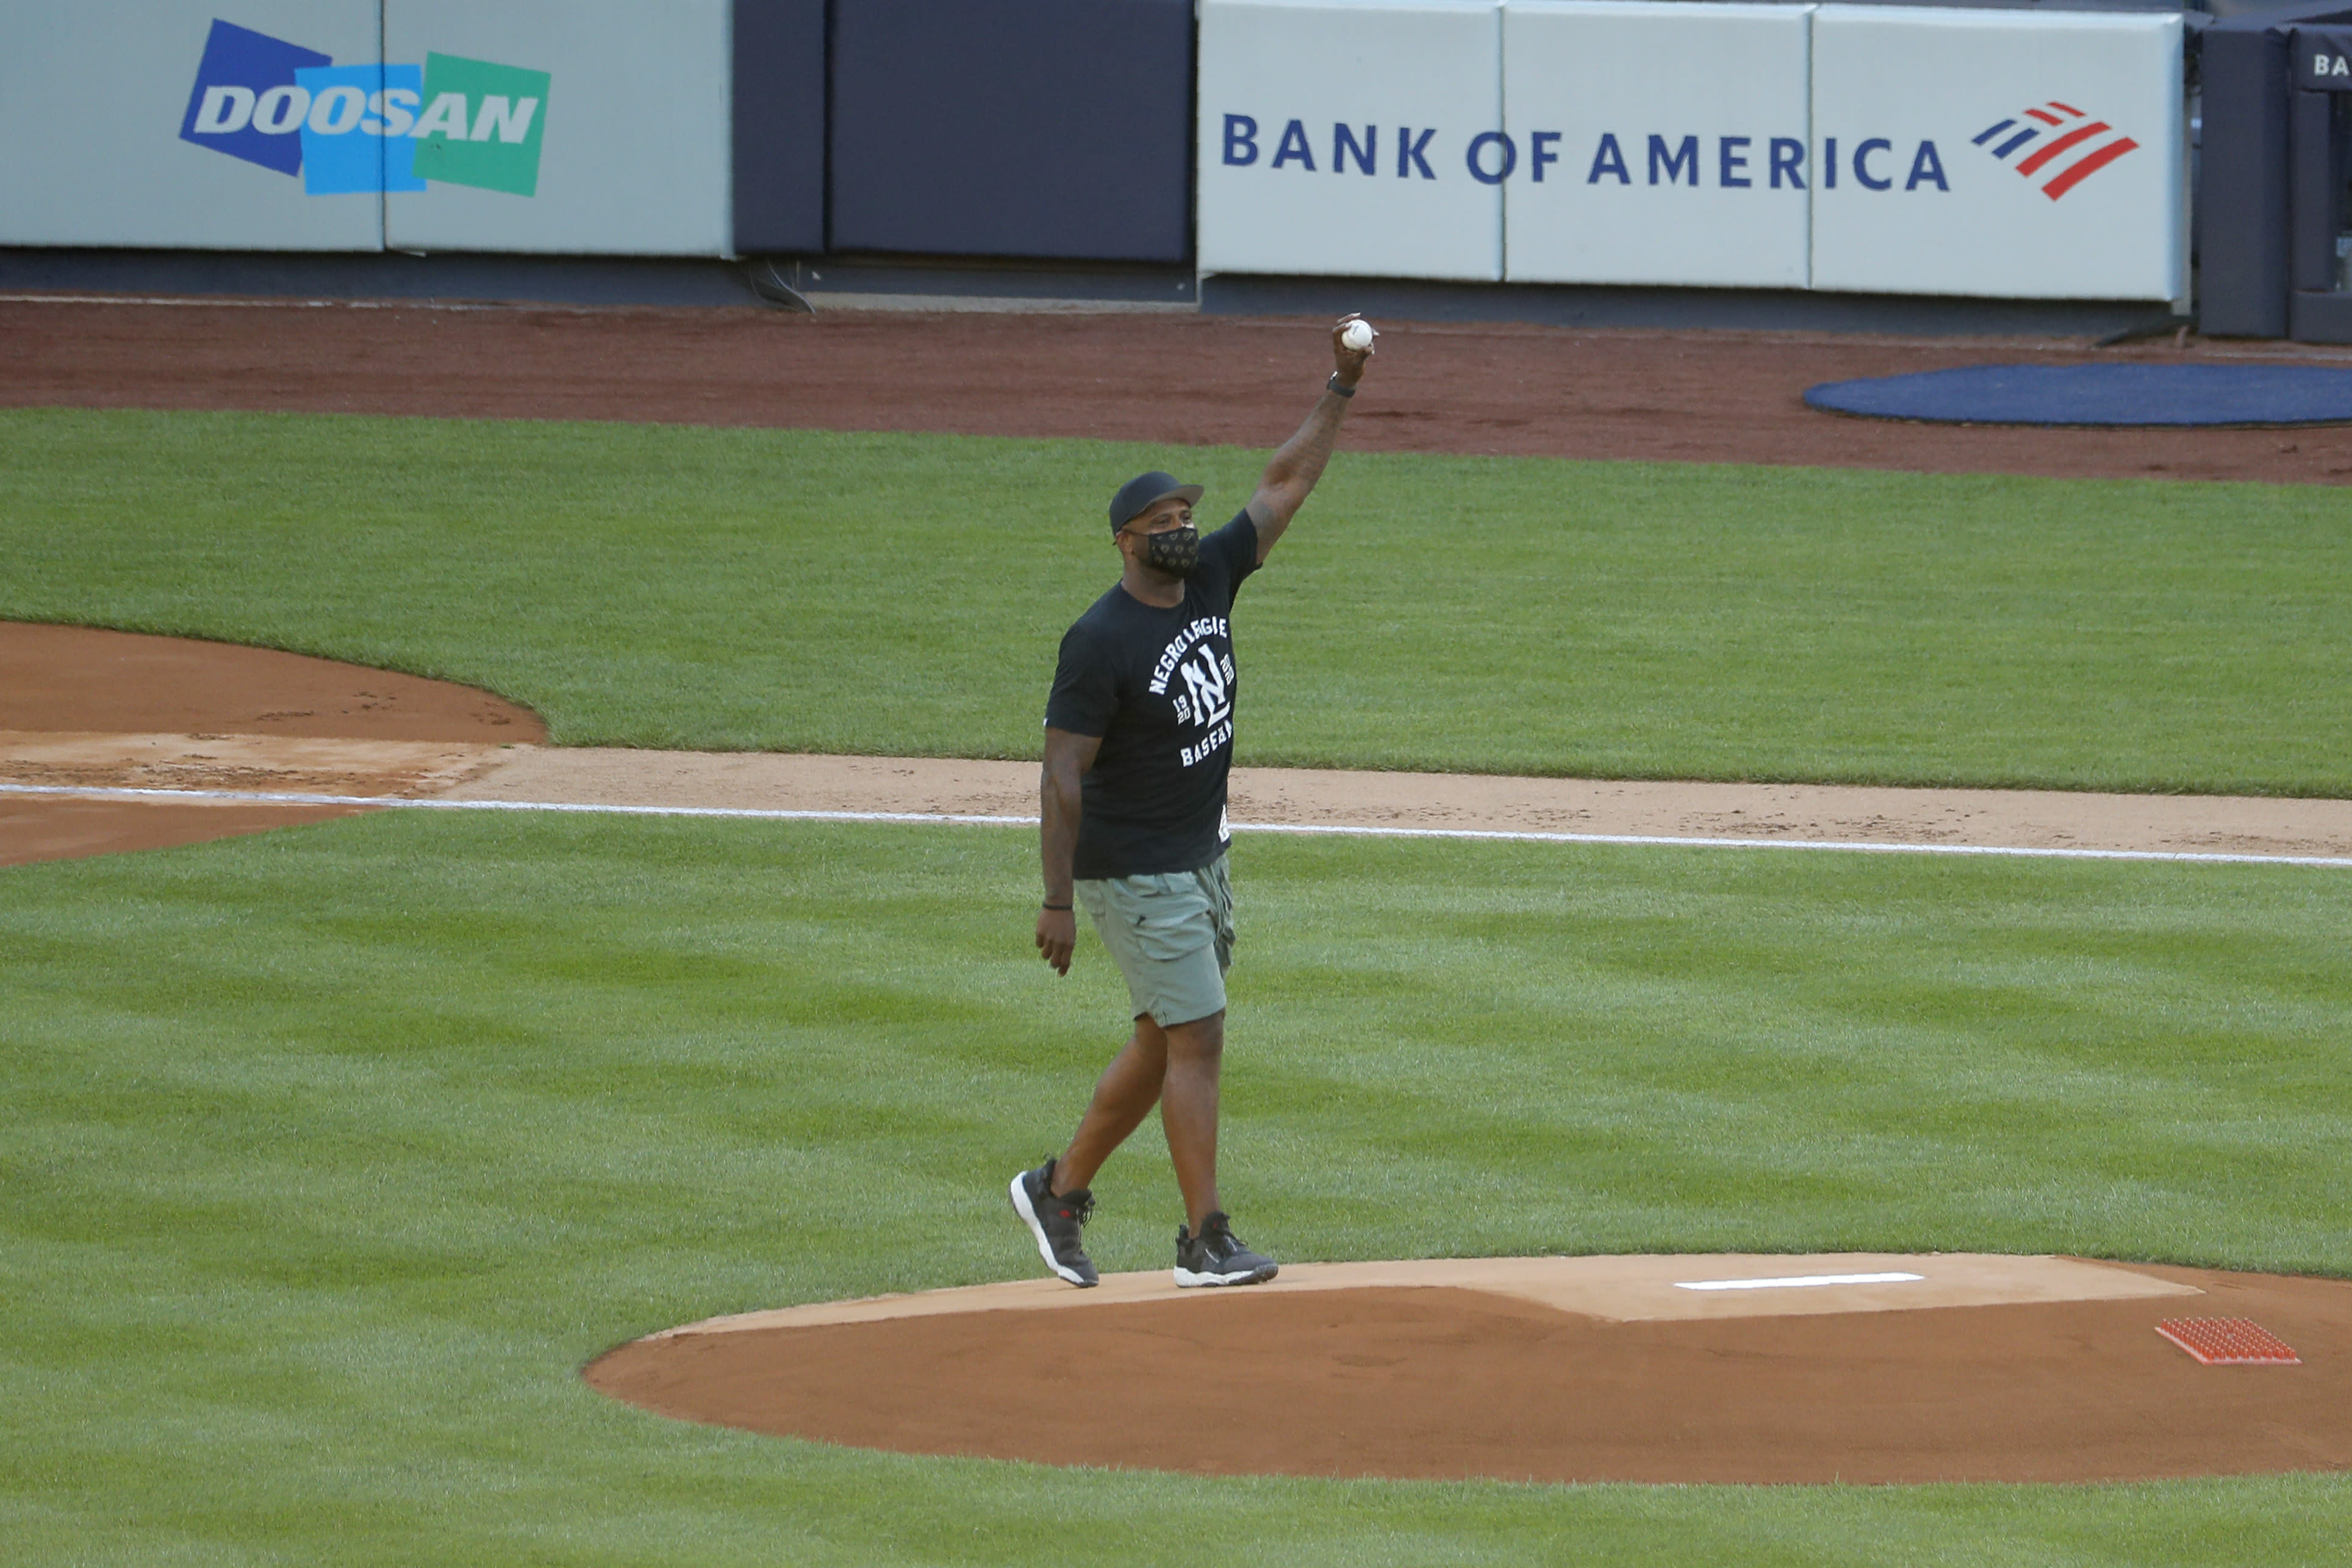 Former New York Yankees pitcher C.C. Sabathia gestures before throwing out the first pitch before the baseball game against the Boston Red Sox at Yankee Stadium, Friday, July 31, 2020, in New York. (AP Photo/Seth Wenig)